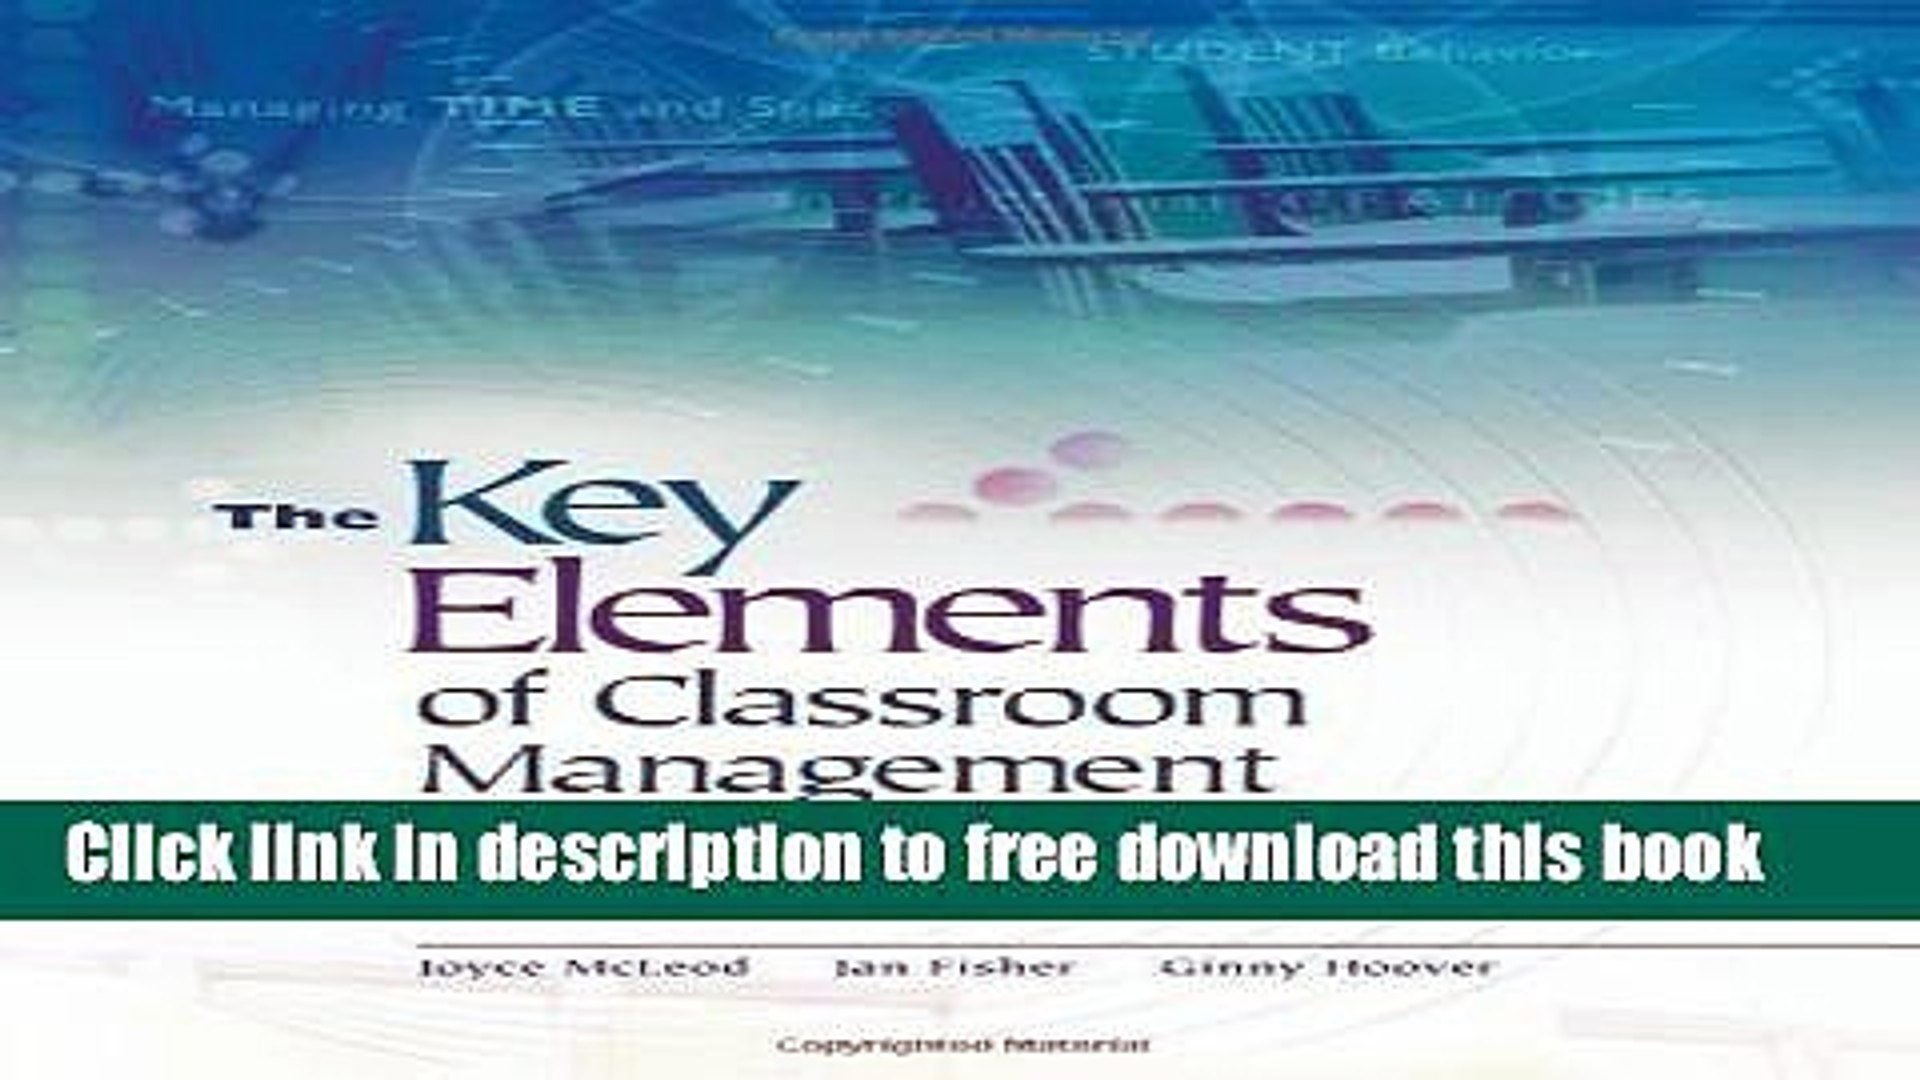 [Download] The Key Elements of Classroom Management: Managing Time and  Space, Student Behavior,